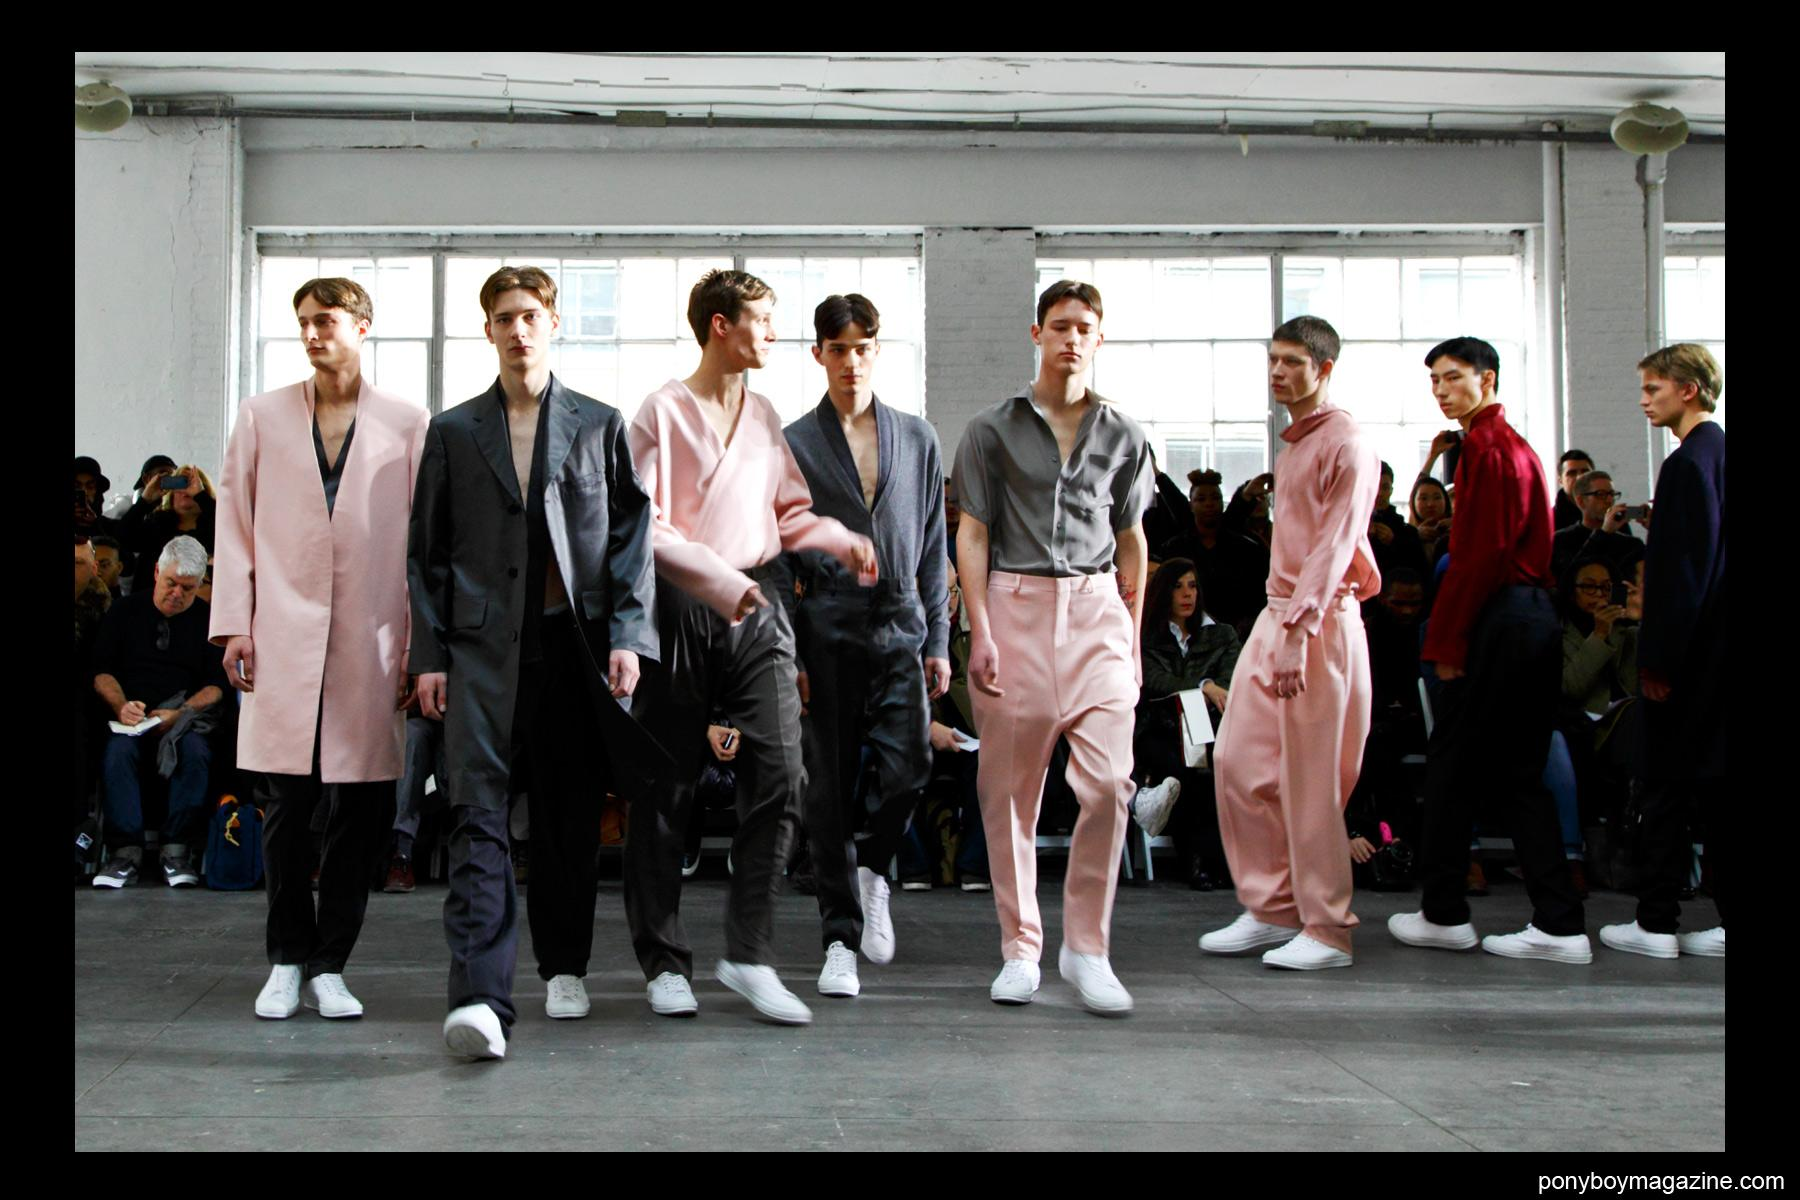 Male models on the runway at Duckie Brown F/W15. Photographed at Industria Studios in New York by Alexander Thompson for Ponyboy magazine.